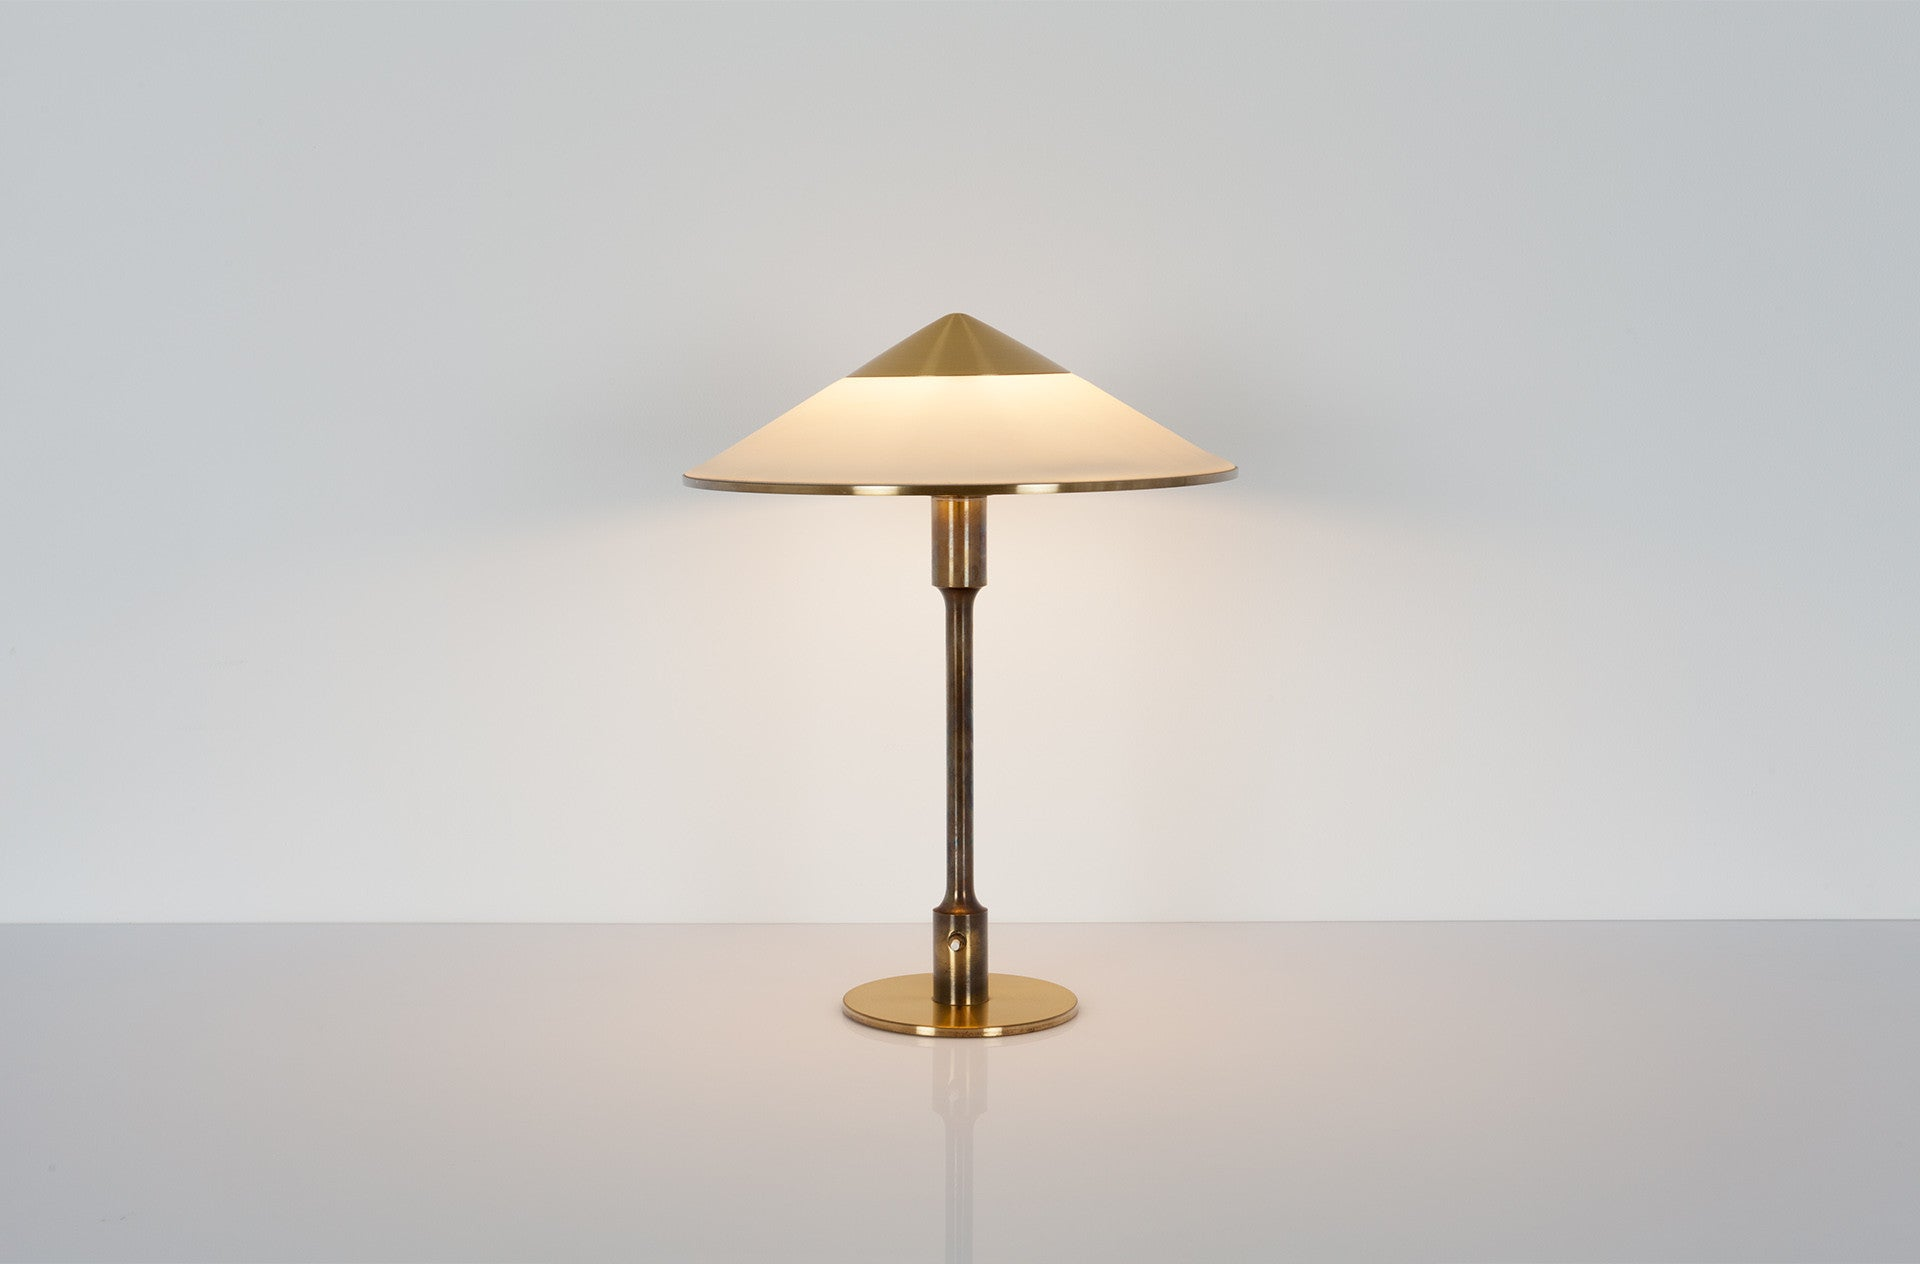 Kongelys table lamp (T3) by Niels Rasmussen Thykier